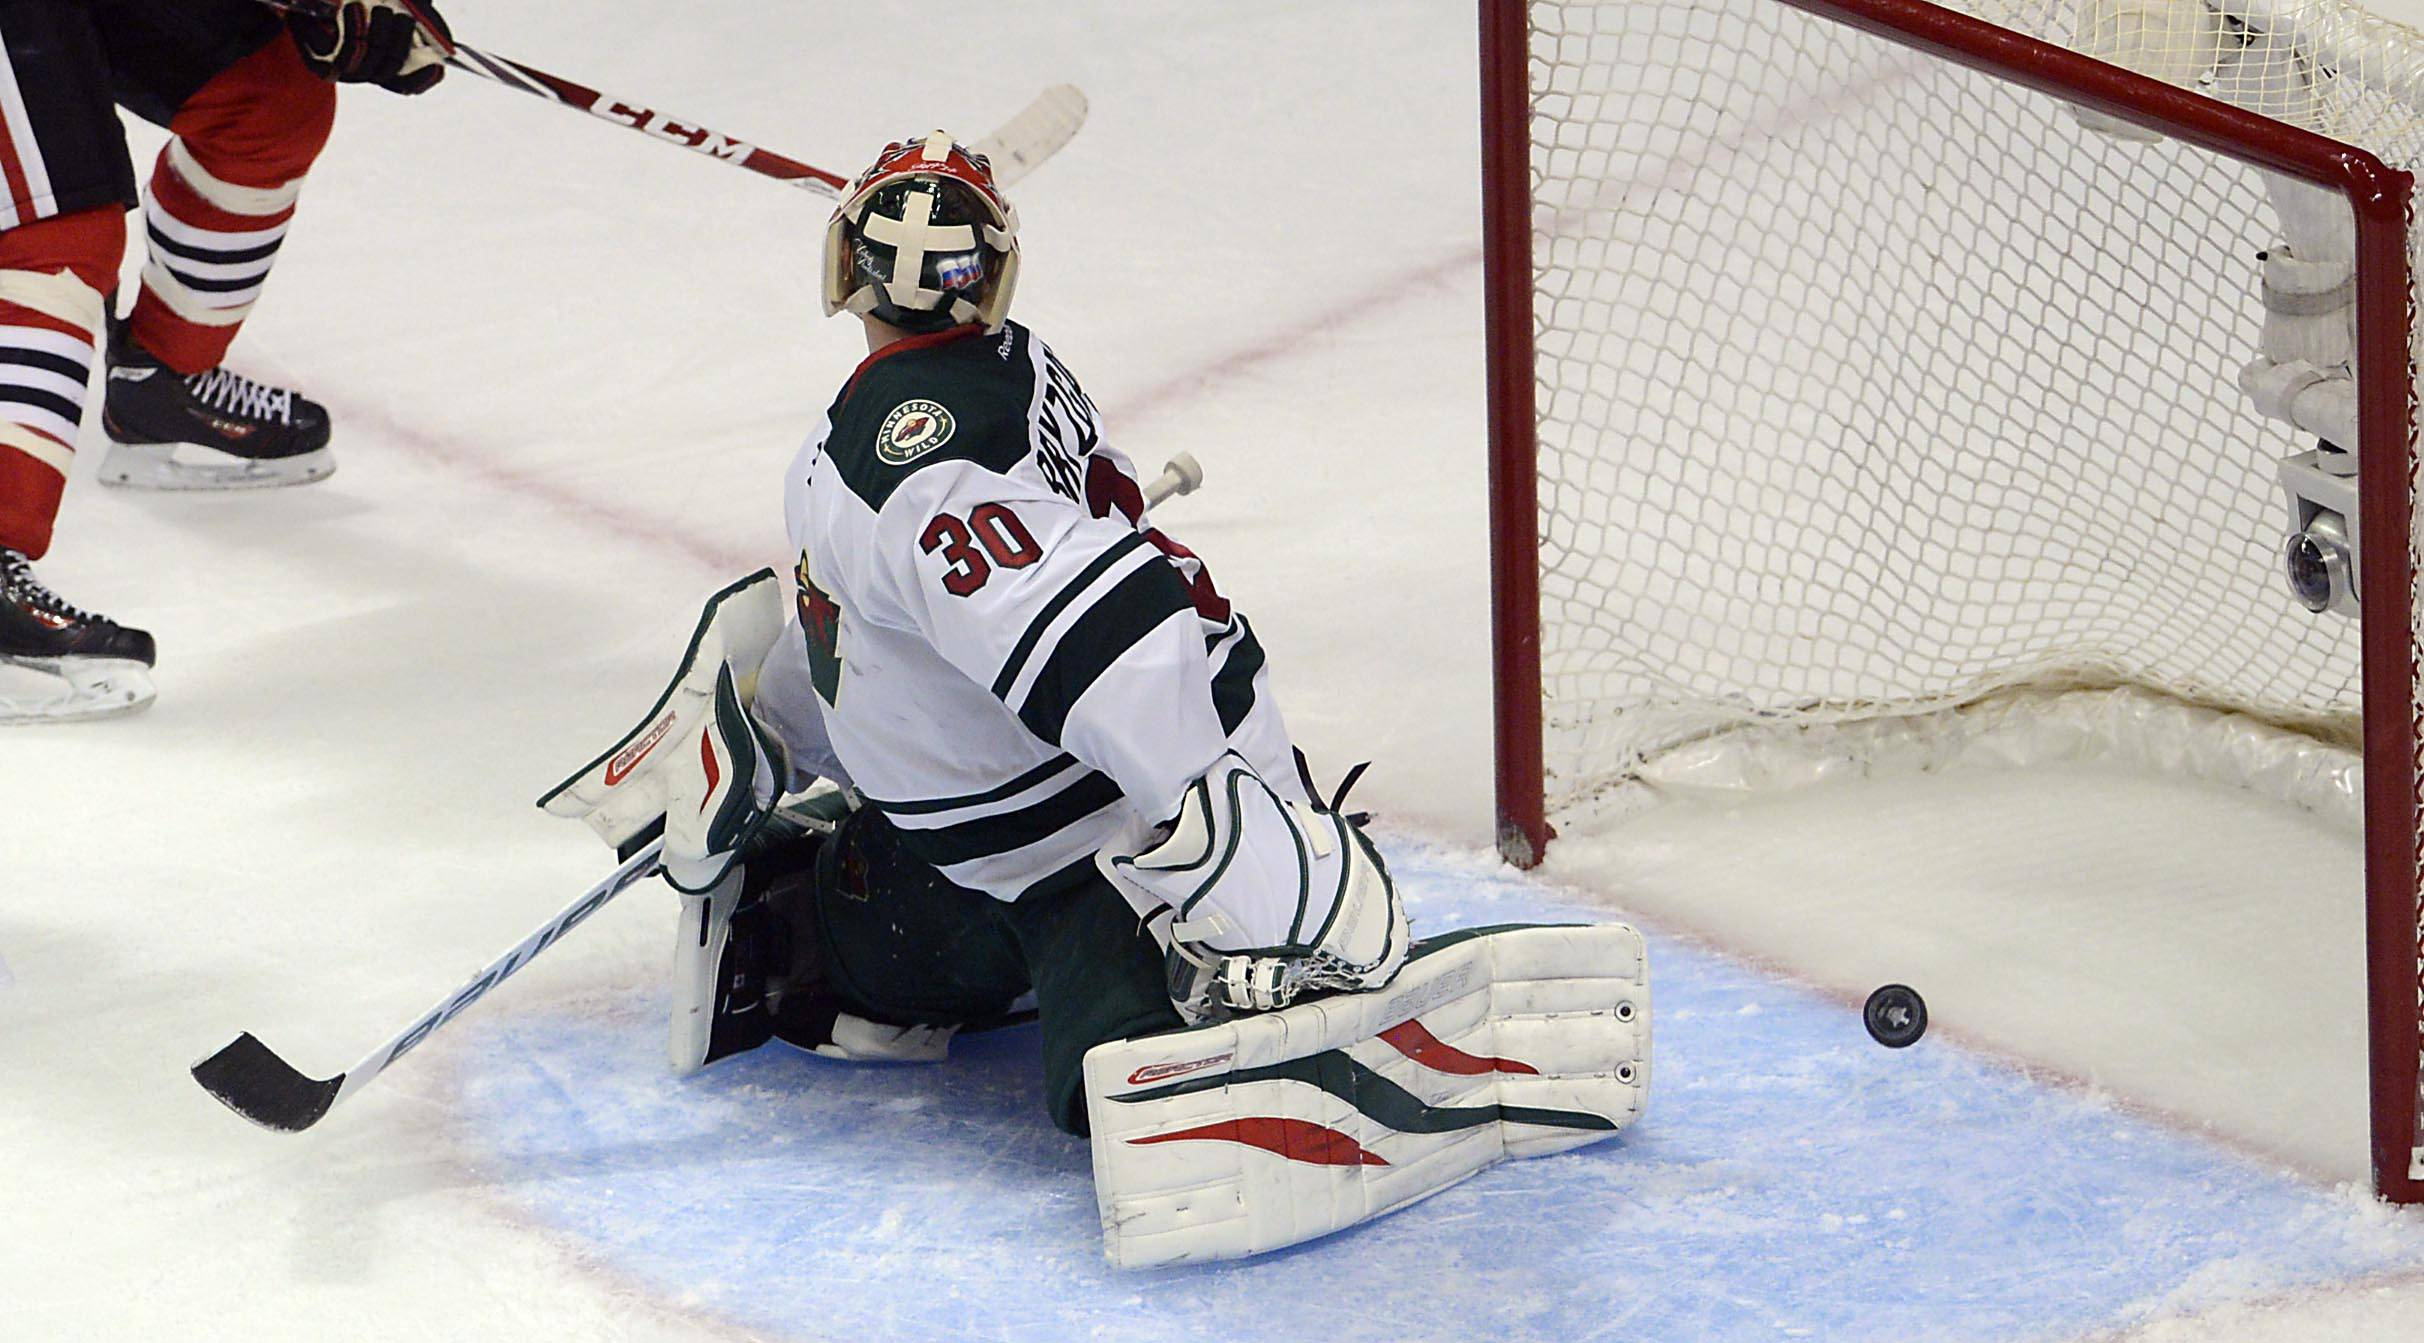 Minnesota Wild goalie Ilya Bryzgalov doesn't see Chicago Blackhawks left wing Brandon Saad's goal go in the net.